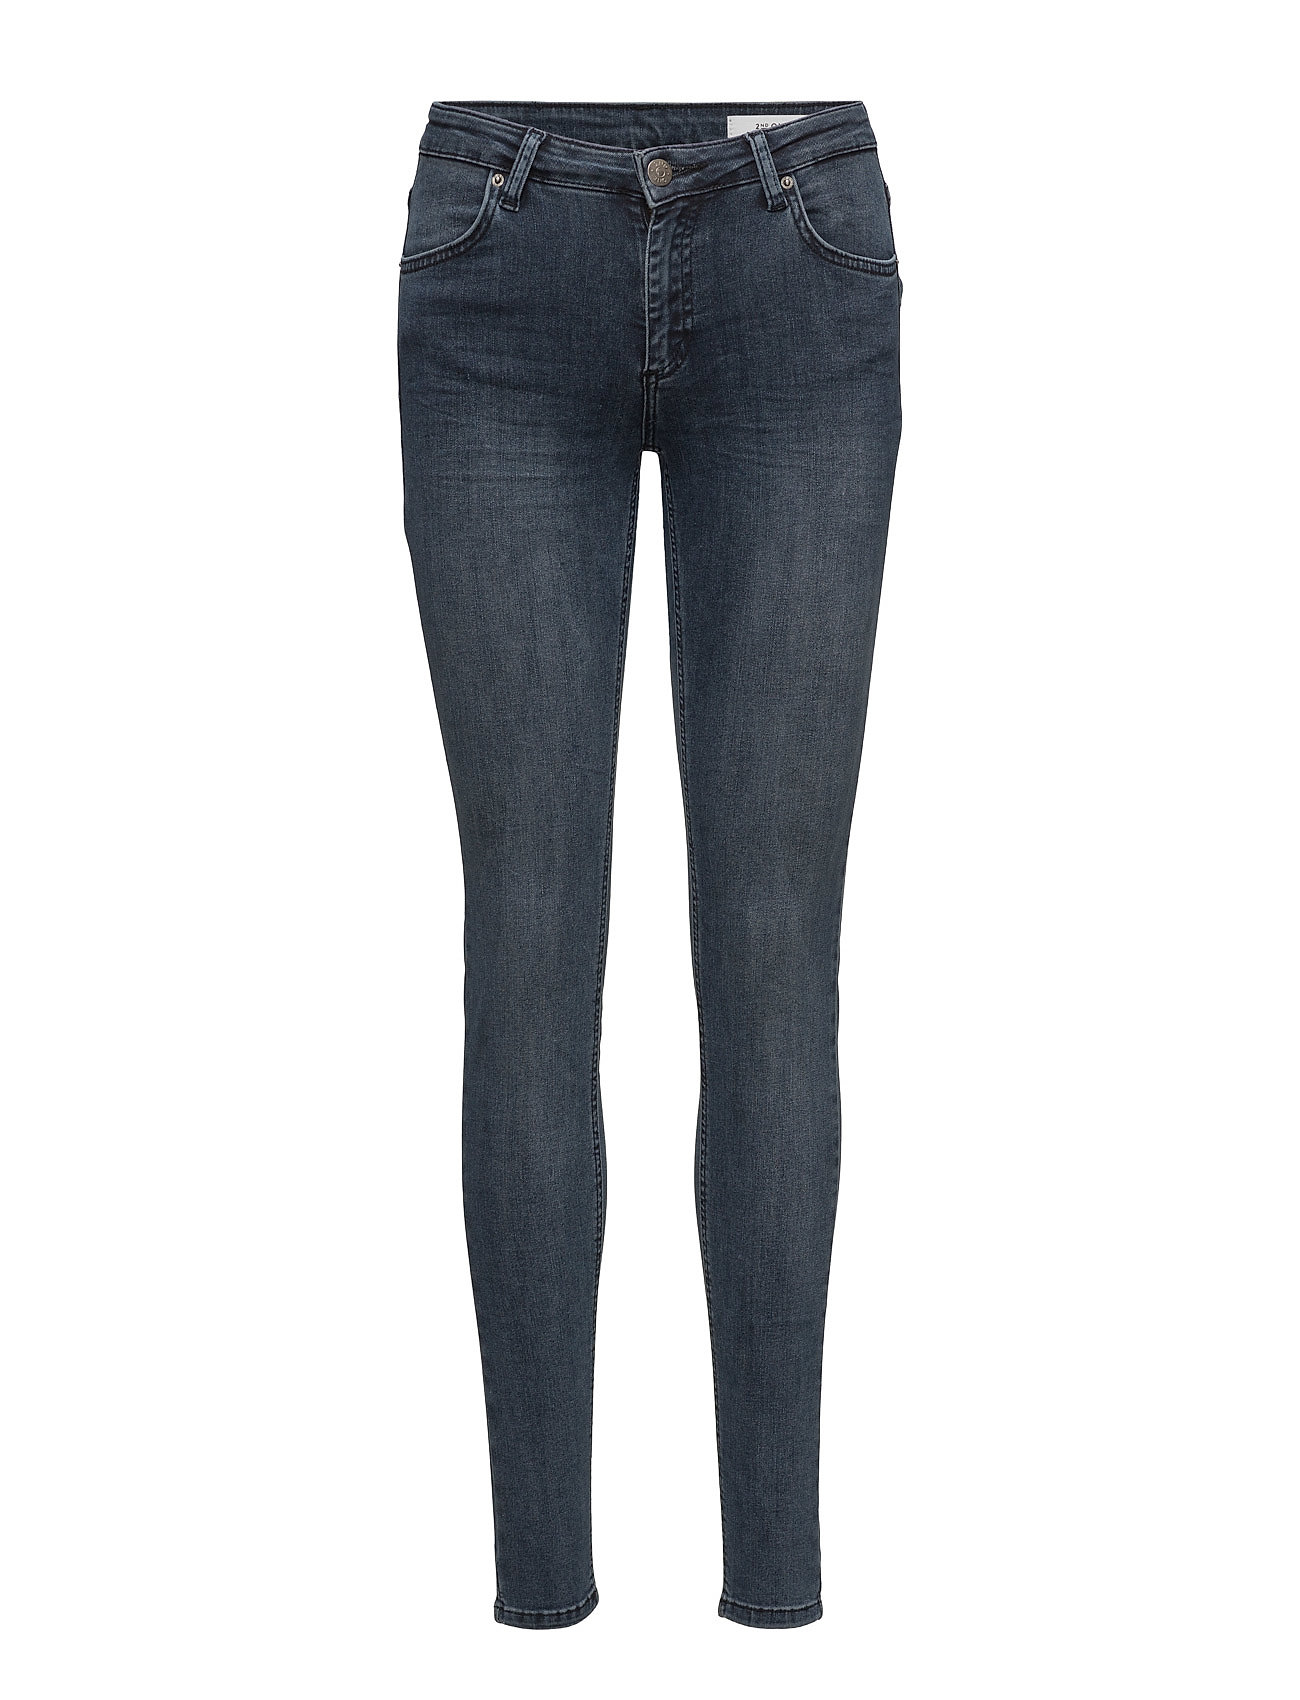 2nd One Nicole 831 Blue Fade, Jeans